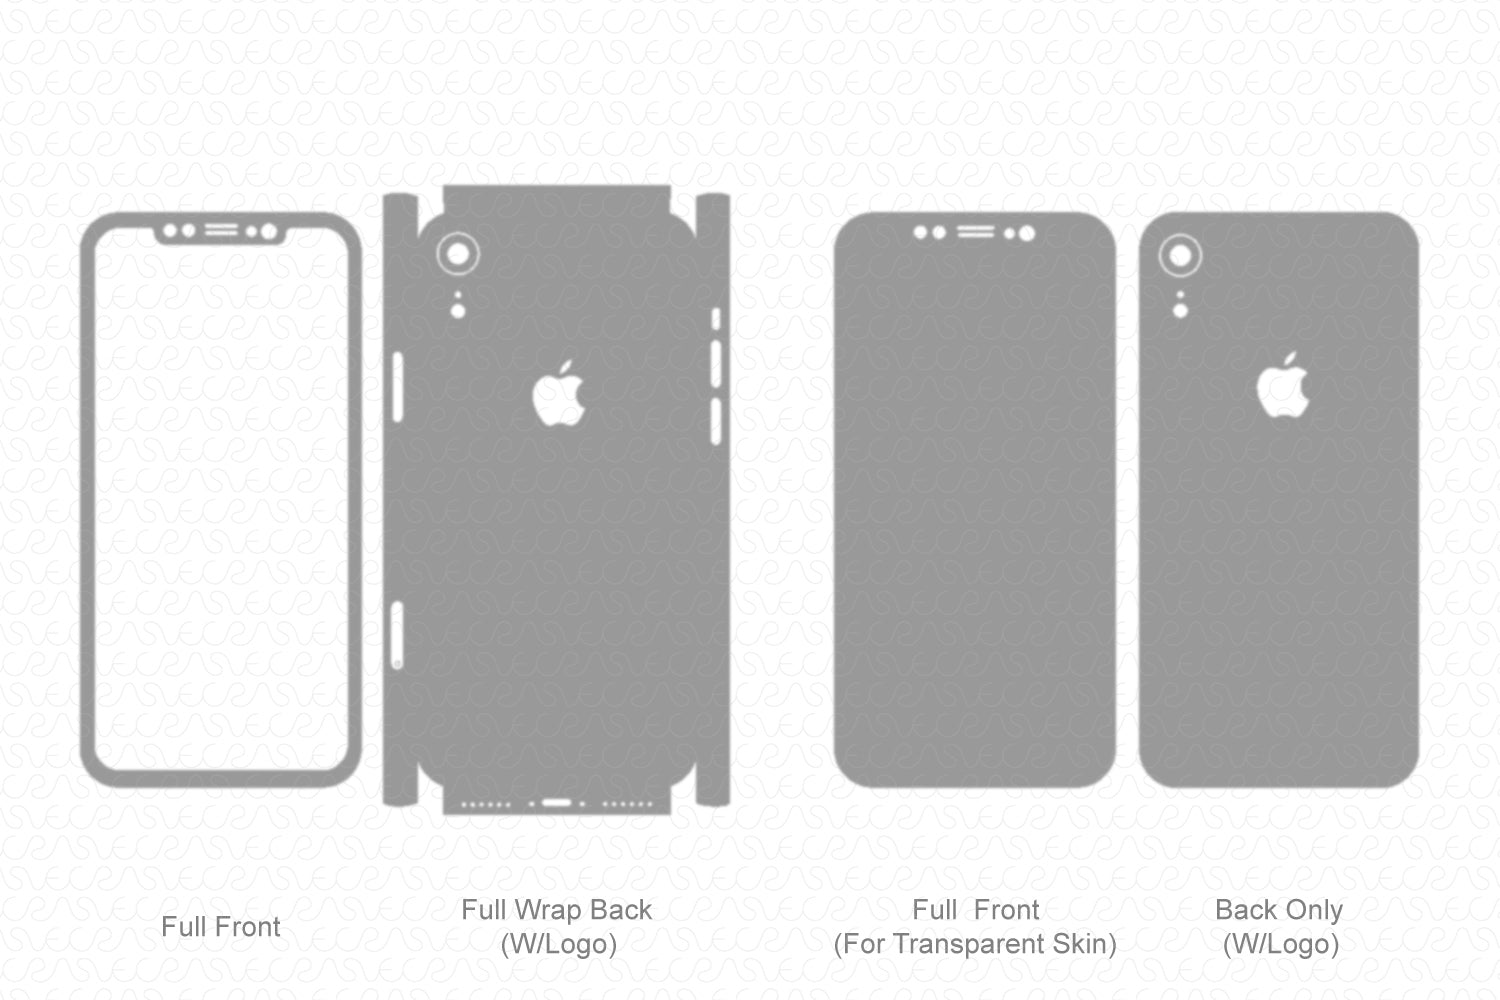 iPhone XR (2018) Skin Template Vector